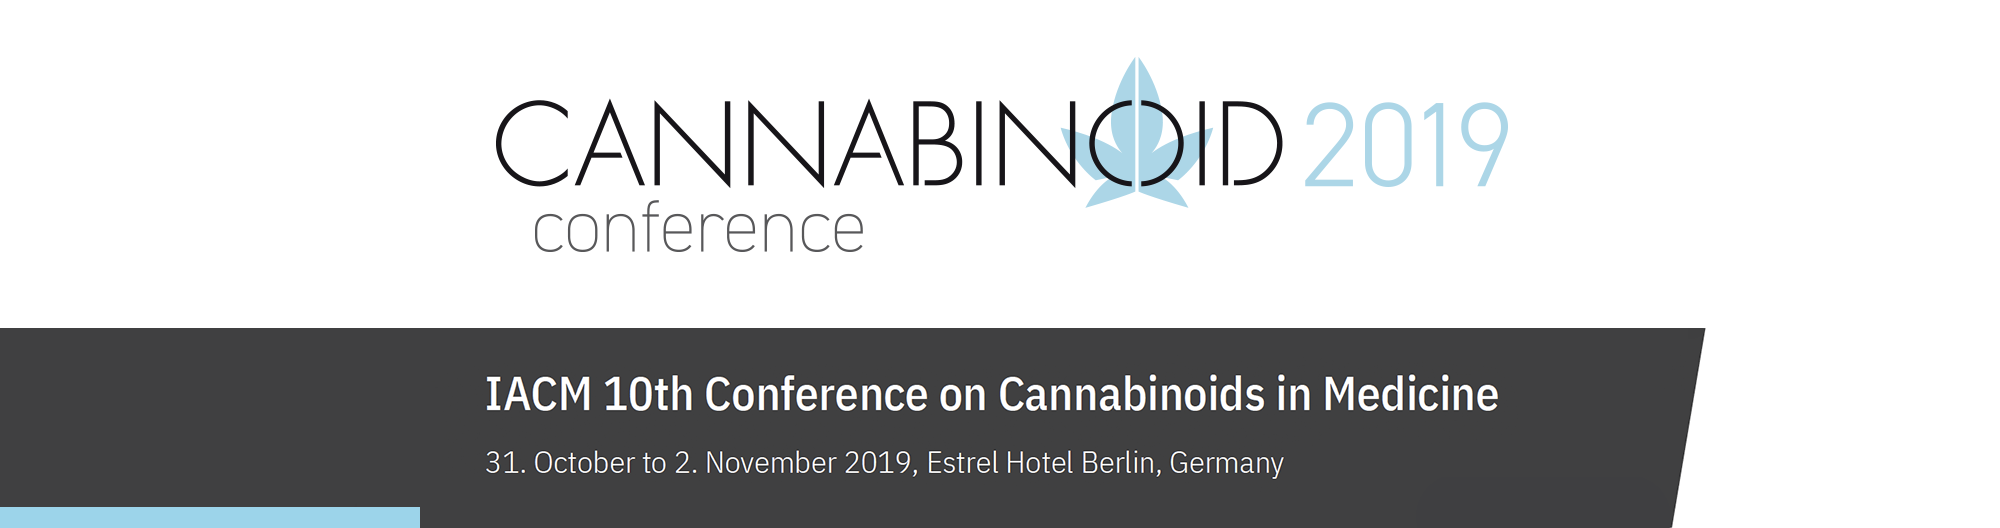 Logo - Cannabinoid Conference 2019